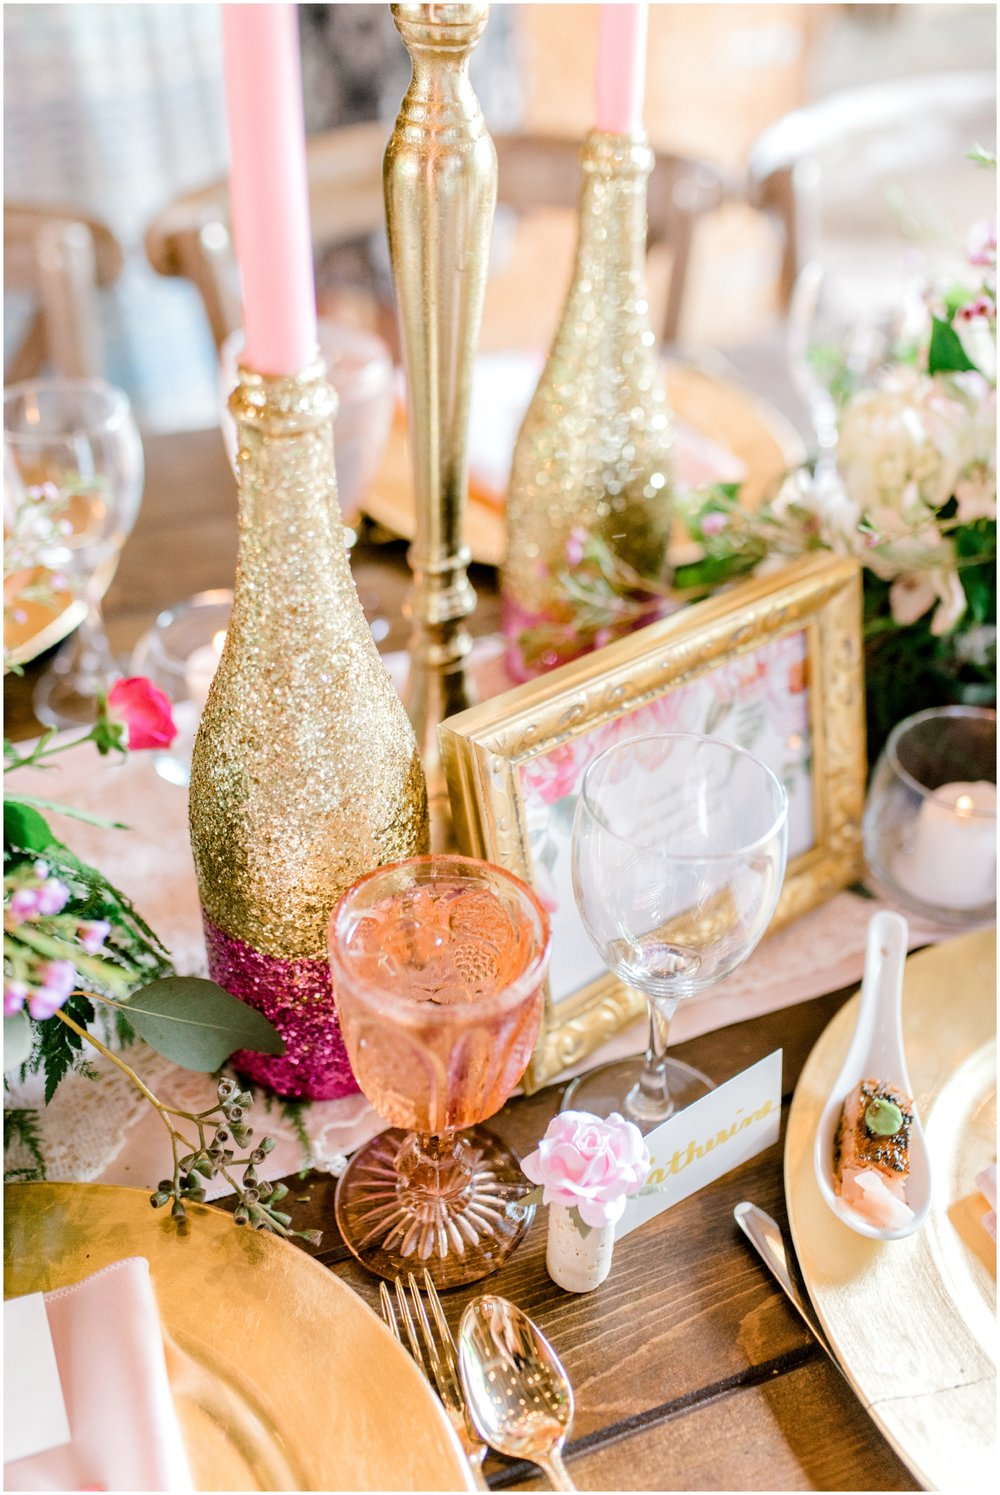 Spring Winery Bridal Shower at Nissley Vineyards in Lancaster County, PA - Krista Brackin Photography_0043.jpg